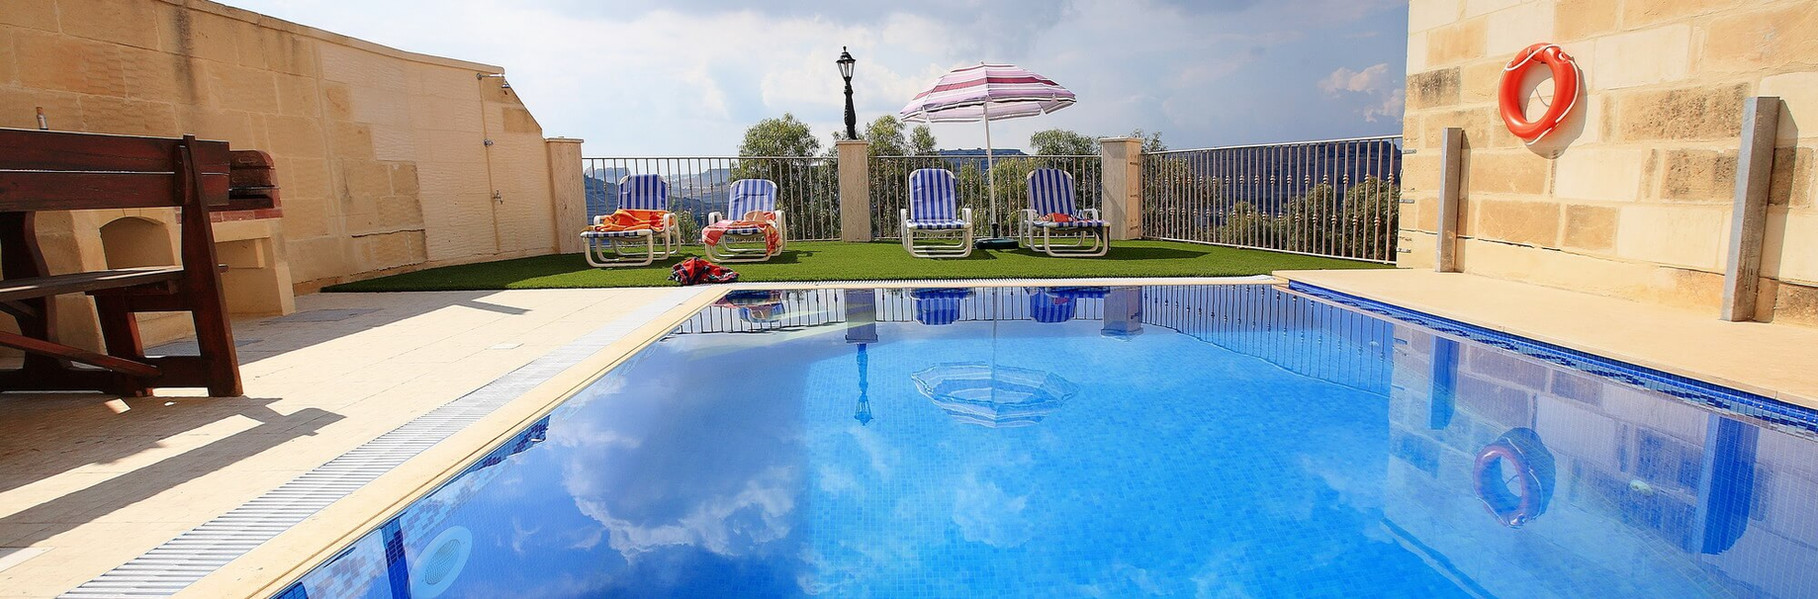 pool-with-a-view-luc.jpg